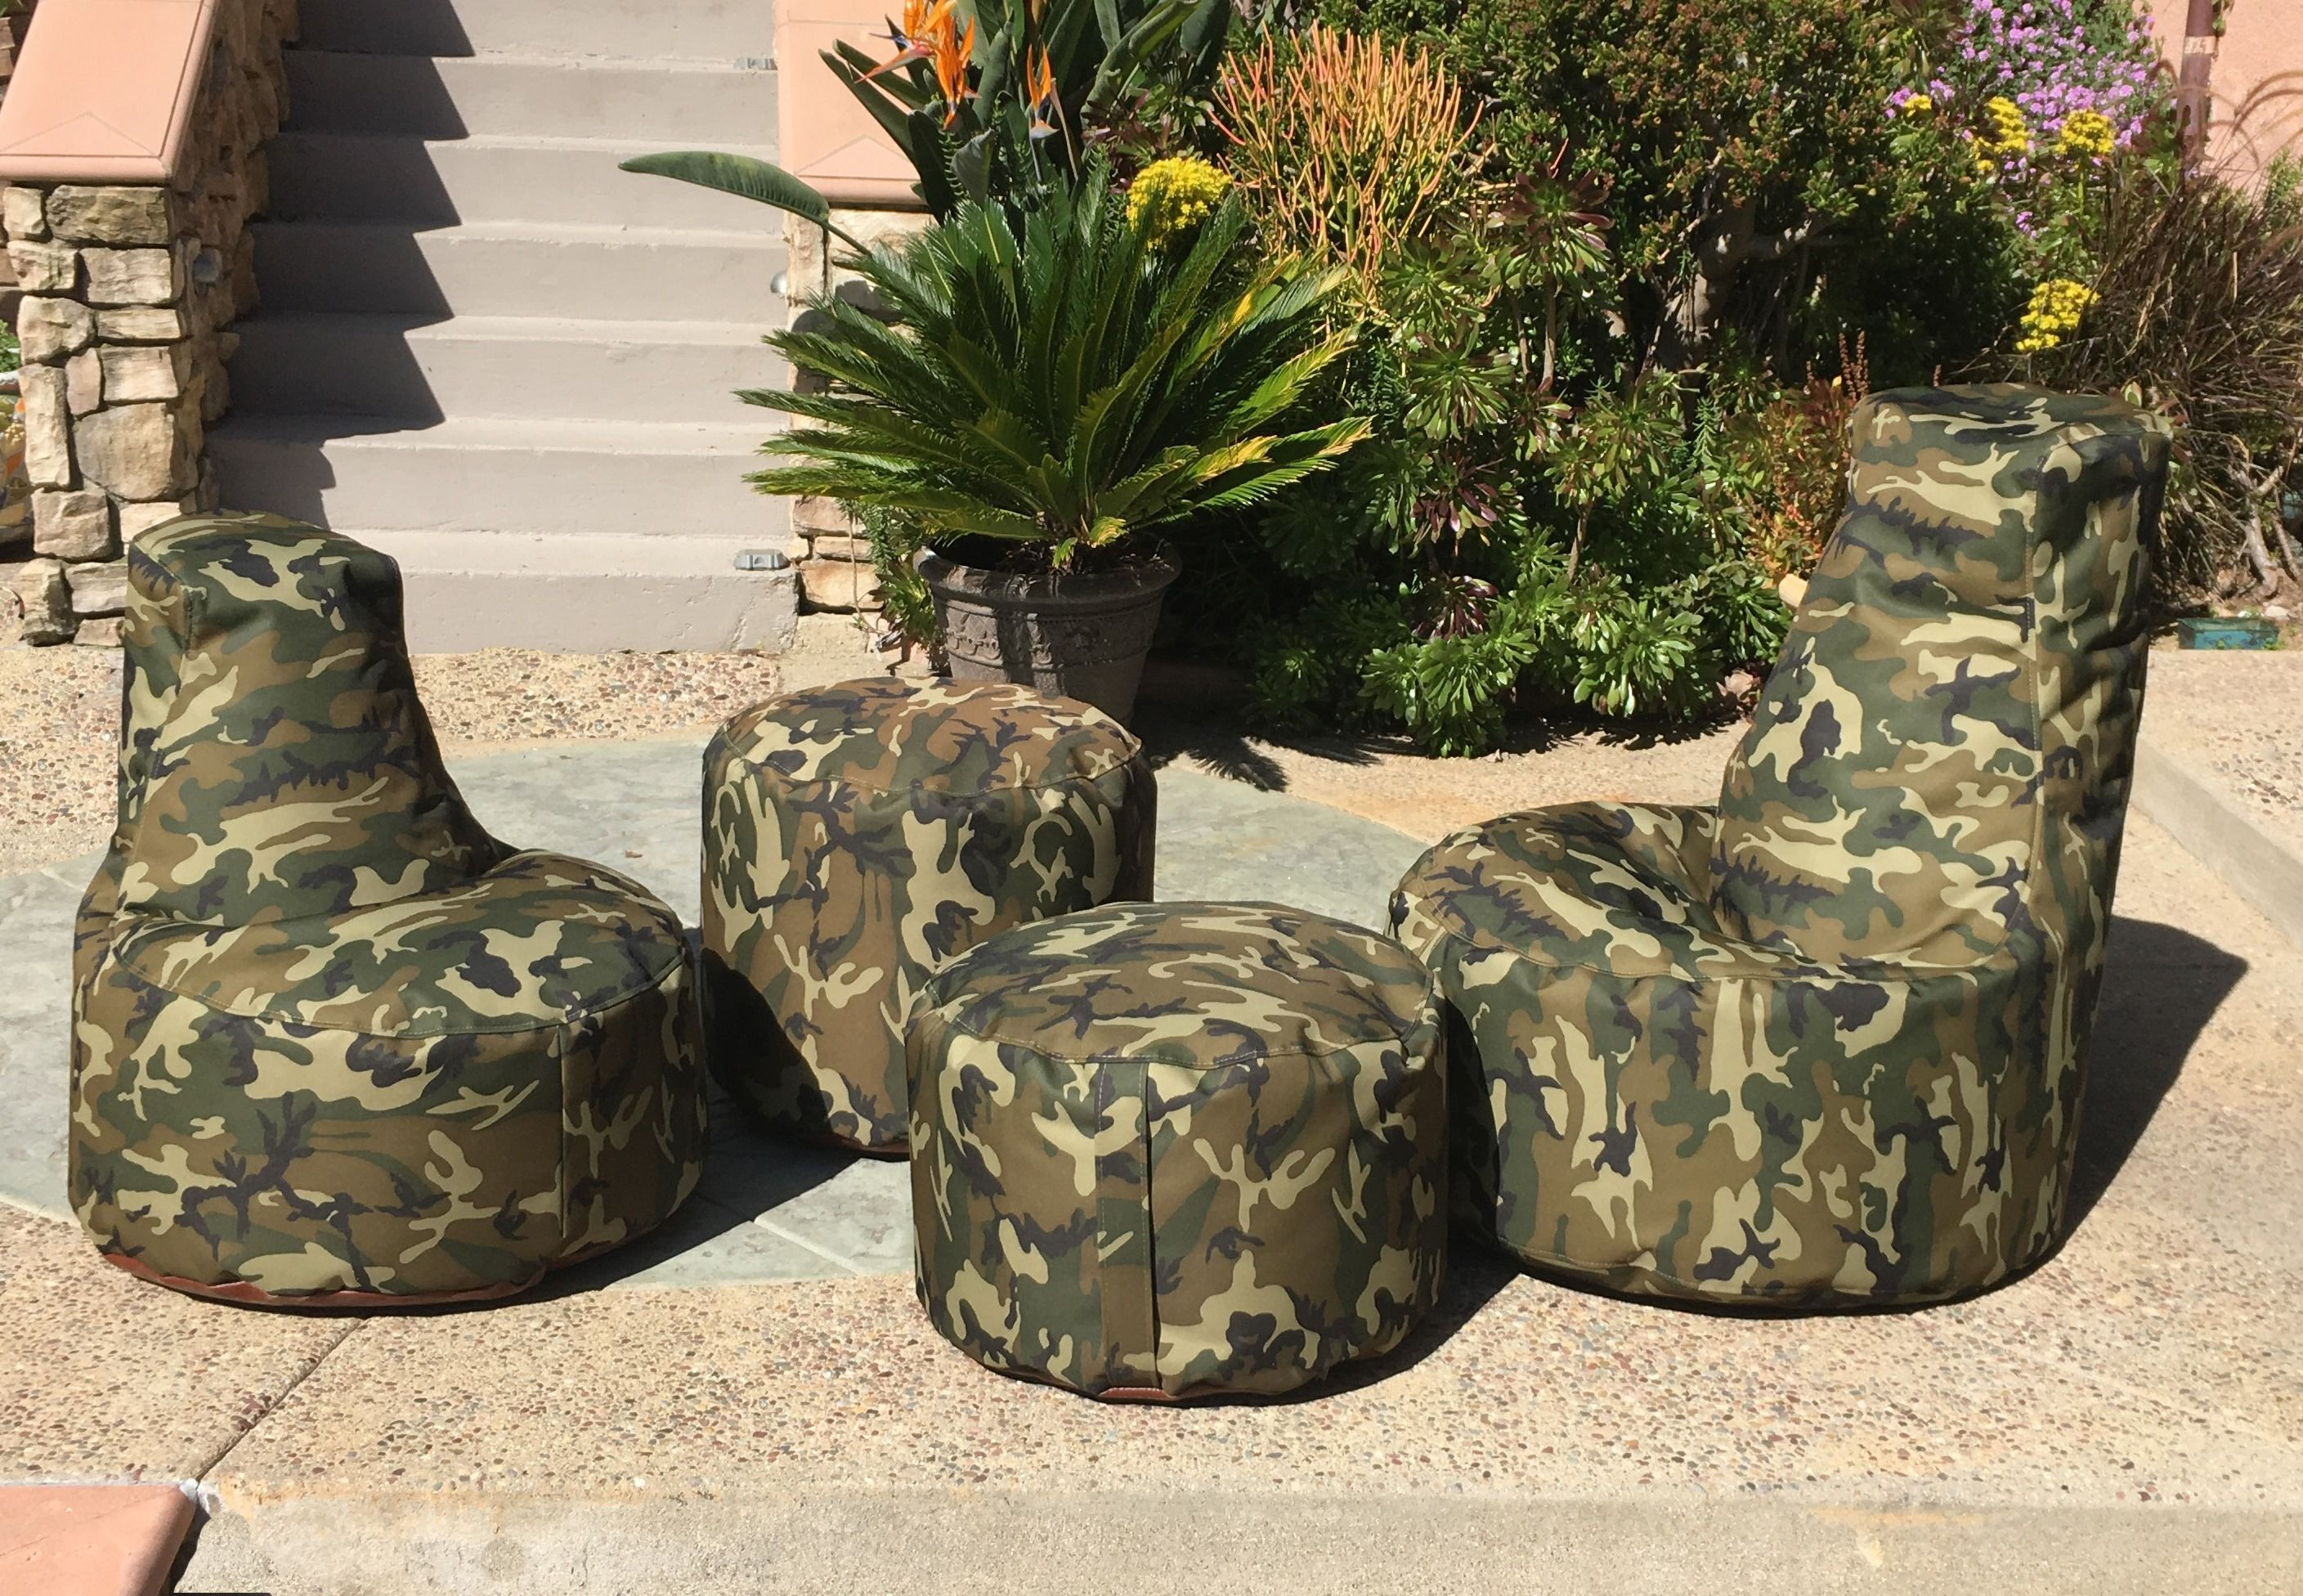 Wayfair Hot Shot Chairs Brings To You The Extremely Durable Indoor Outdoor Camo Bean Bag Set In Wat Bean Bag Chair Kids Outdoor Bean Bag Outdoor Bean Bag Chair